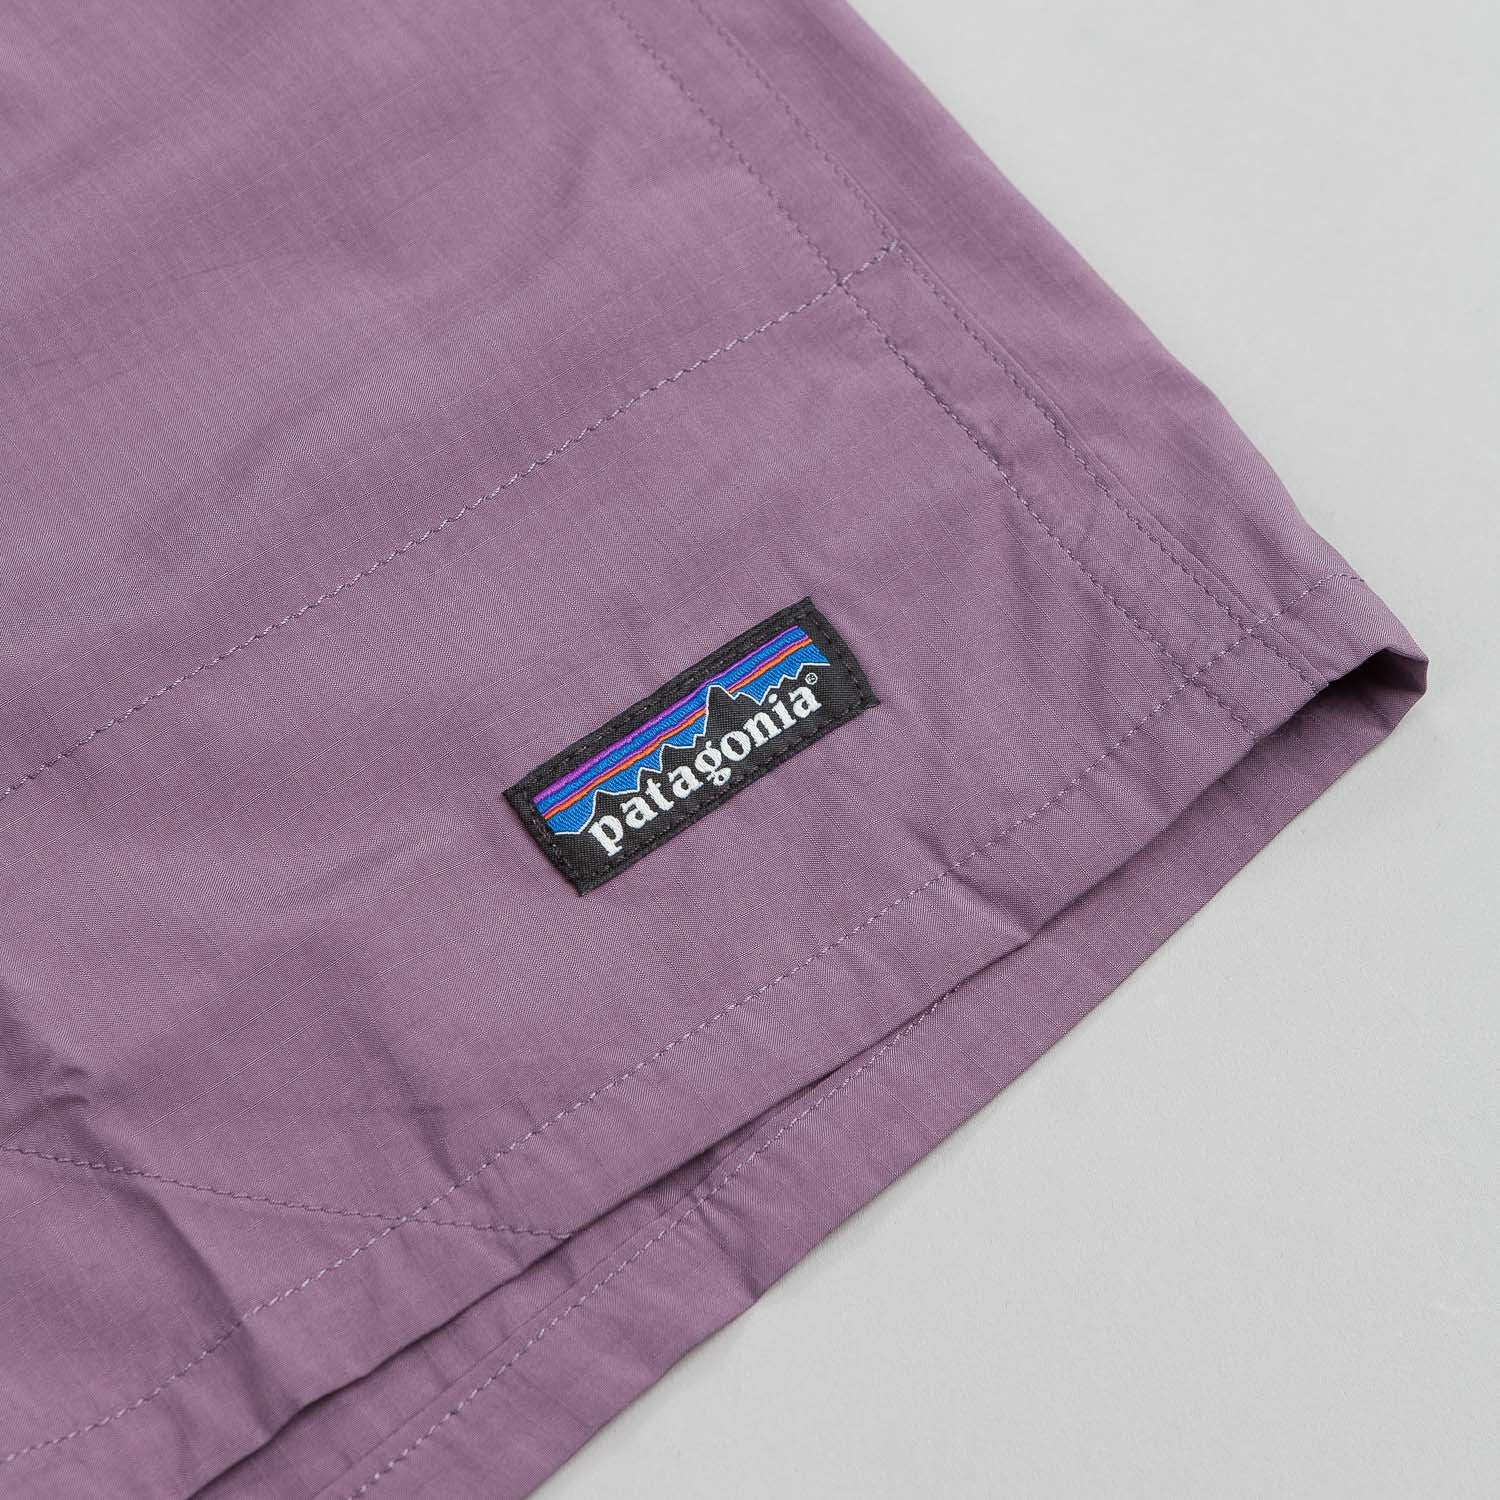 Patagonia Baggies Lights Shorts - Tyrian Purple